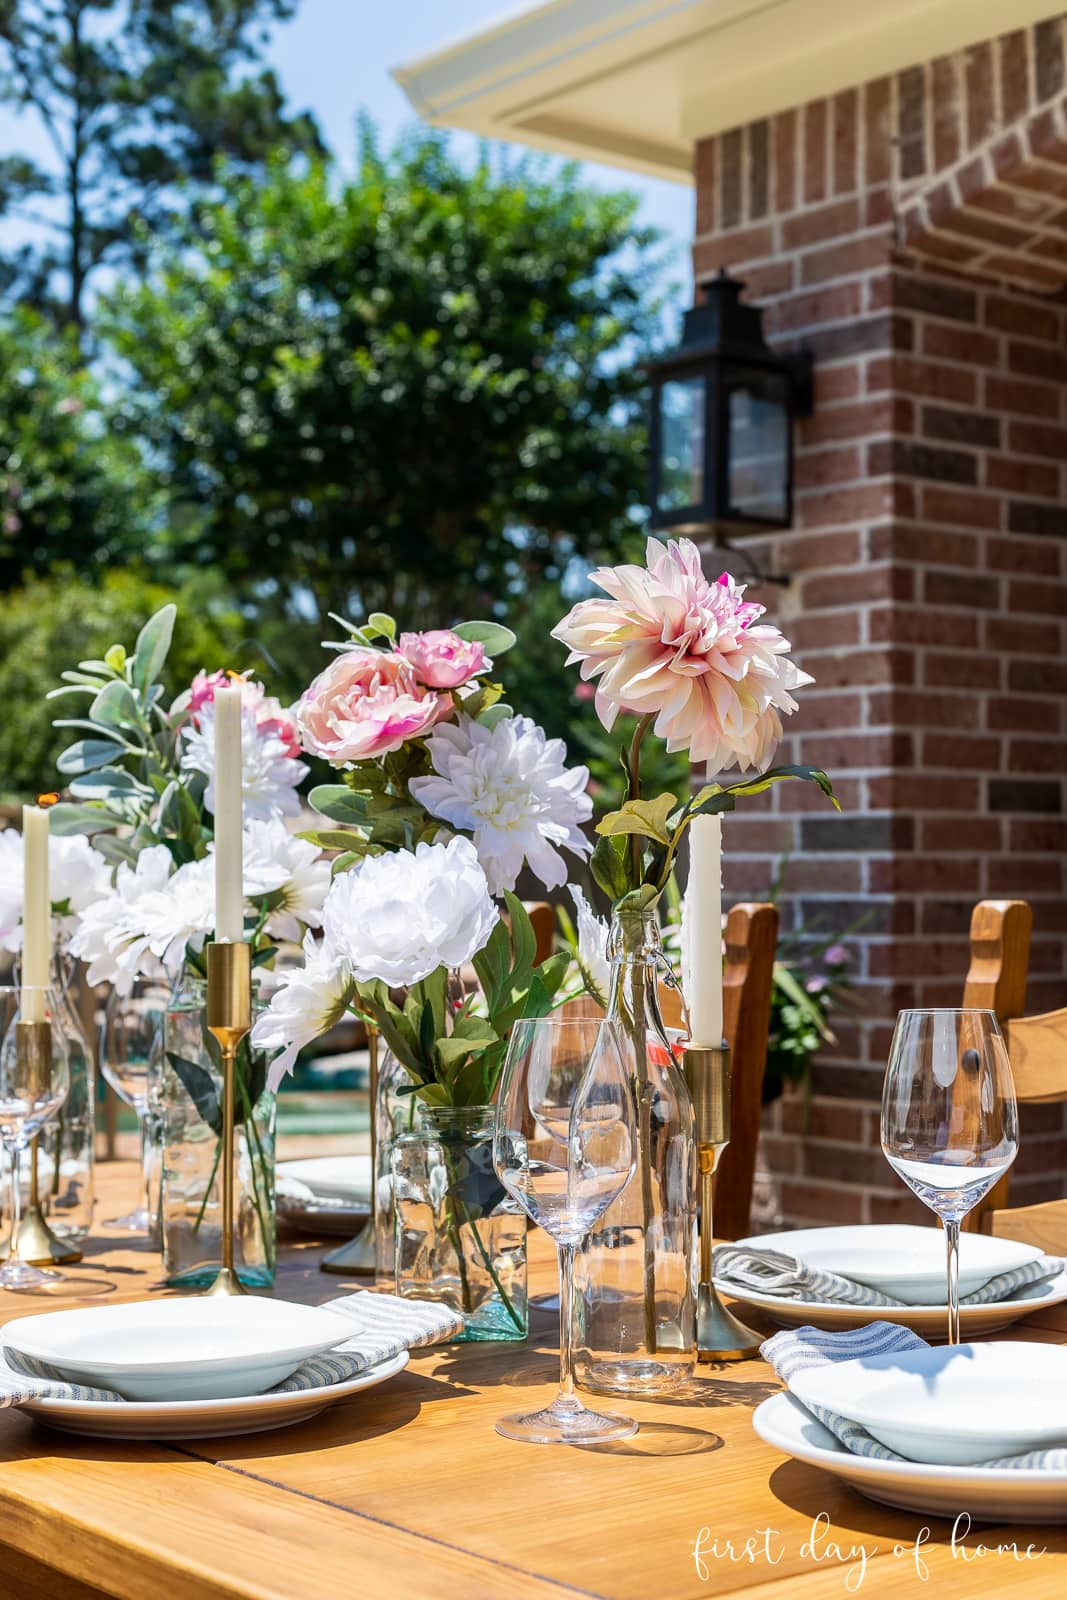 Outdoor dining table centerpiece with glass bottles and vases filled with faux floral stems